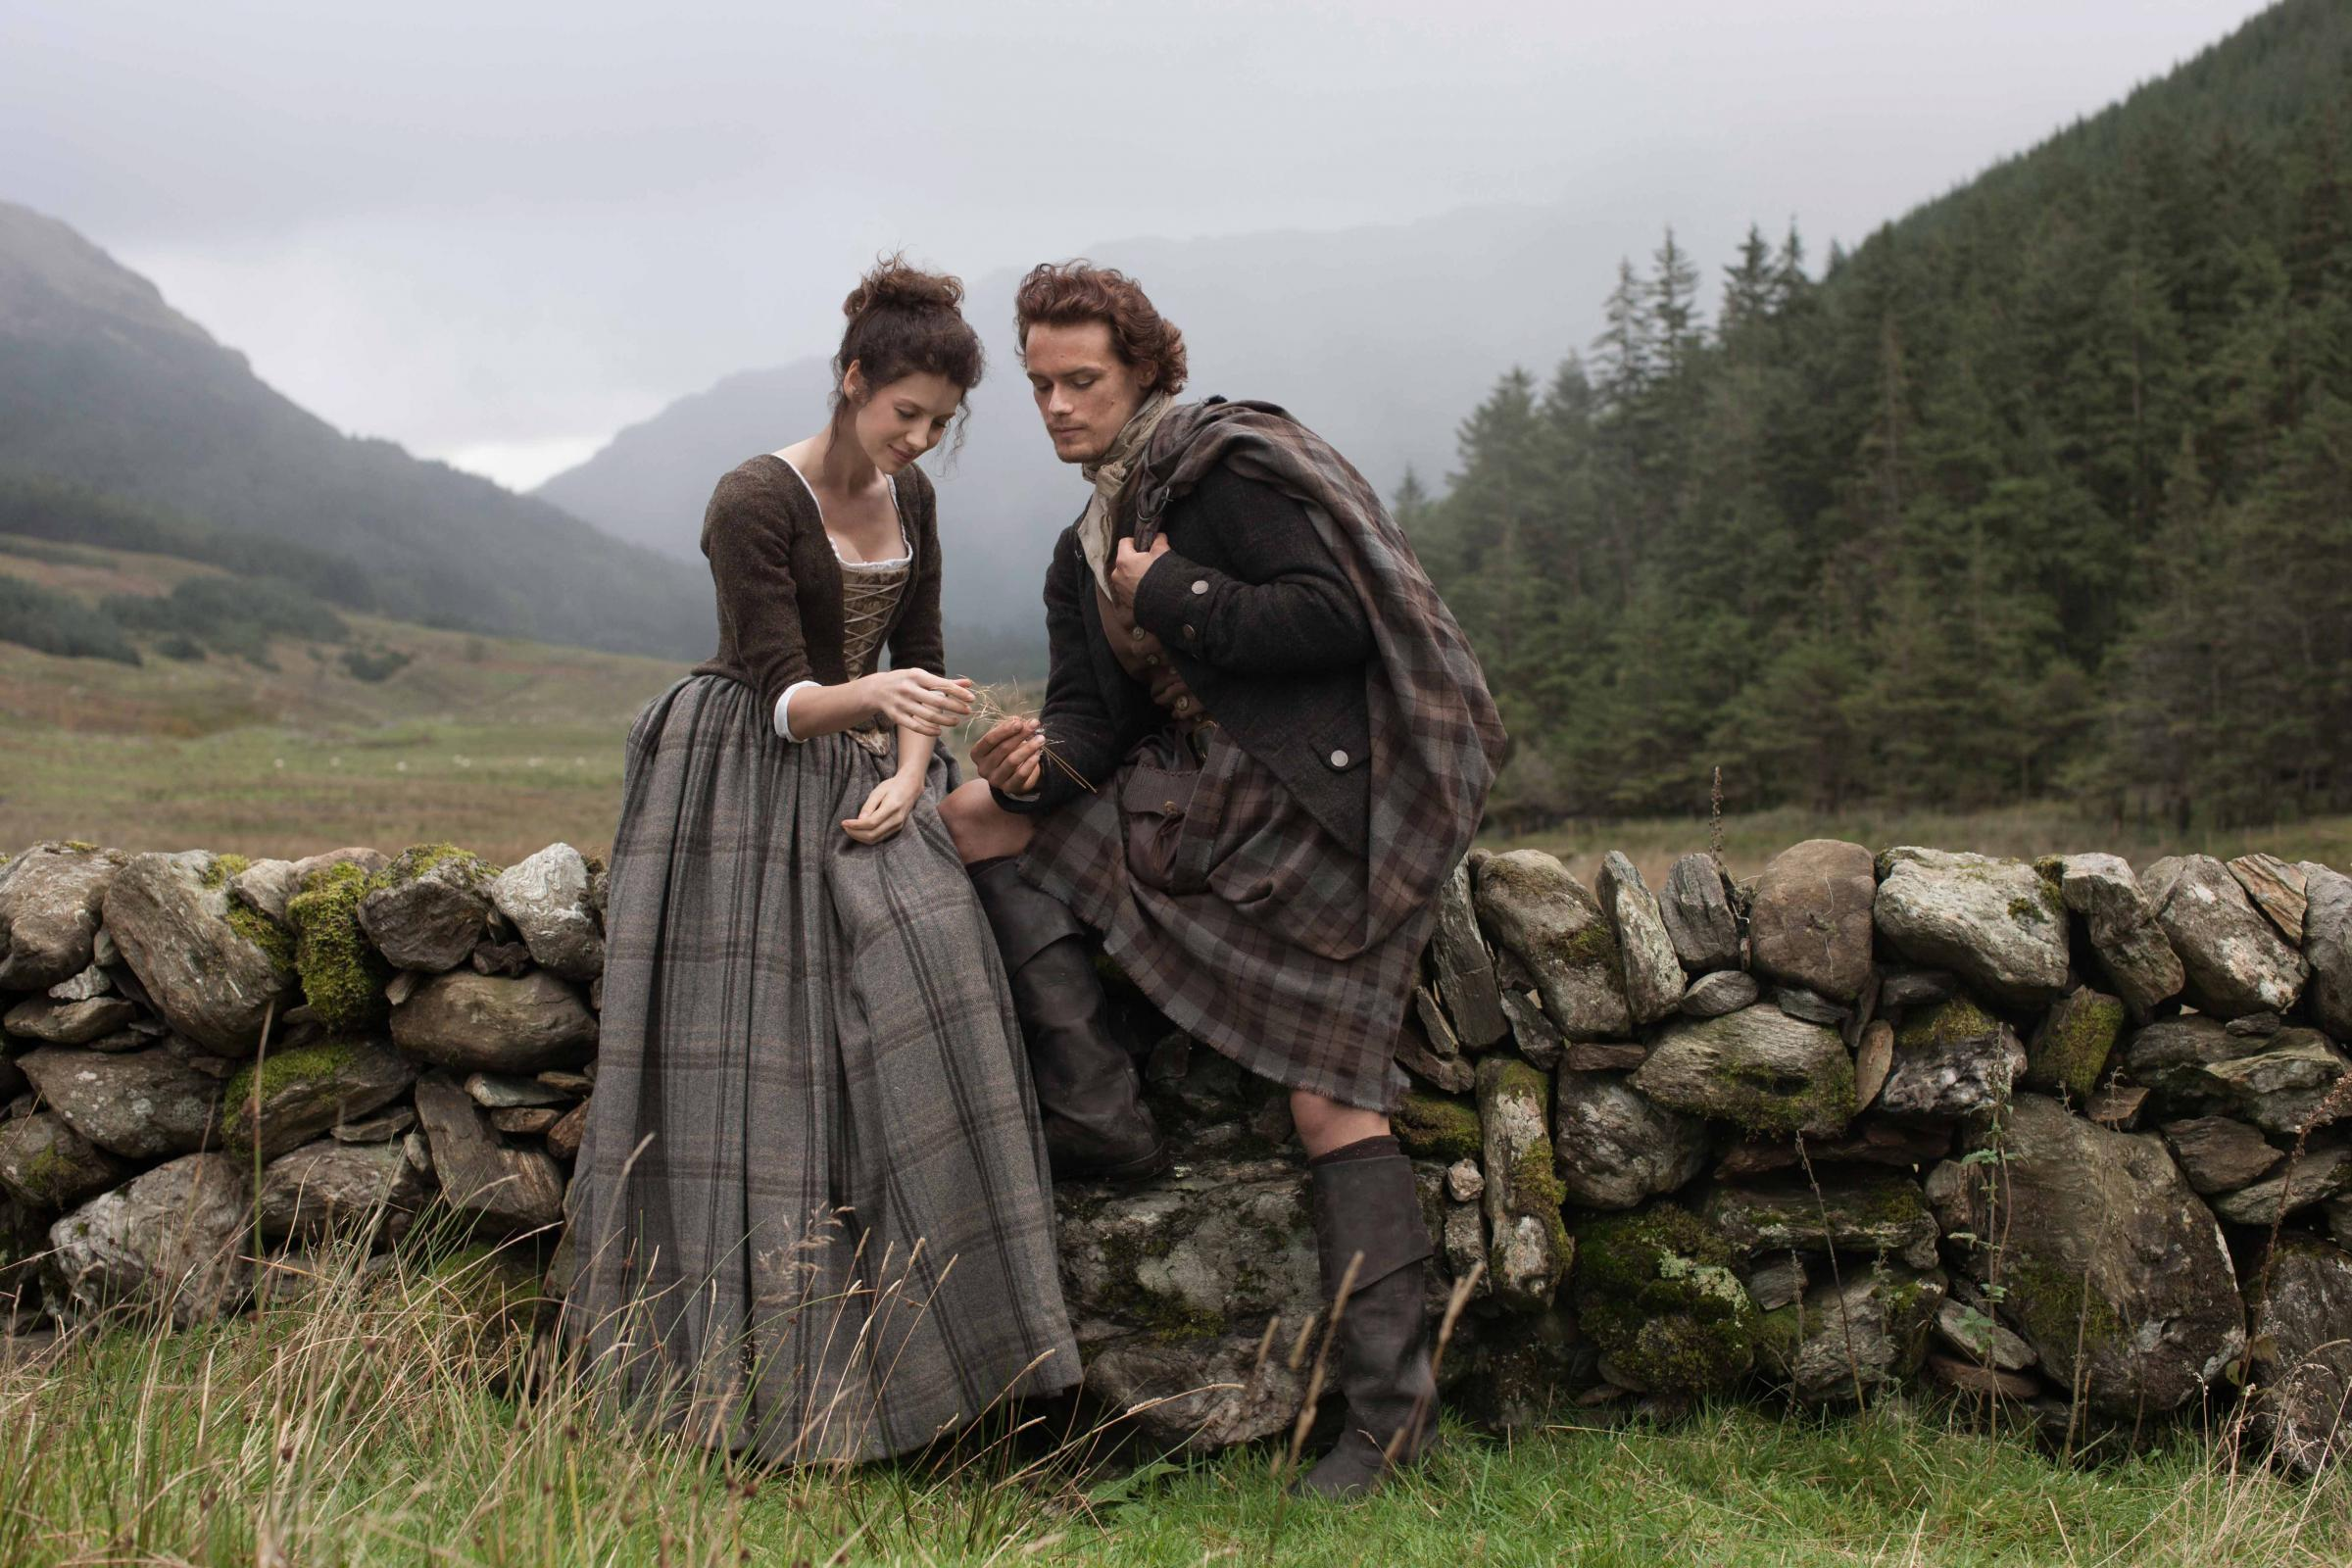 Call for Outlander fans to treat film sites respectfully